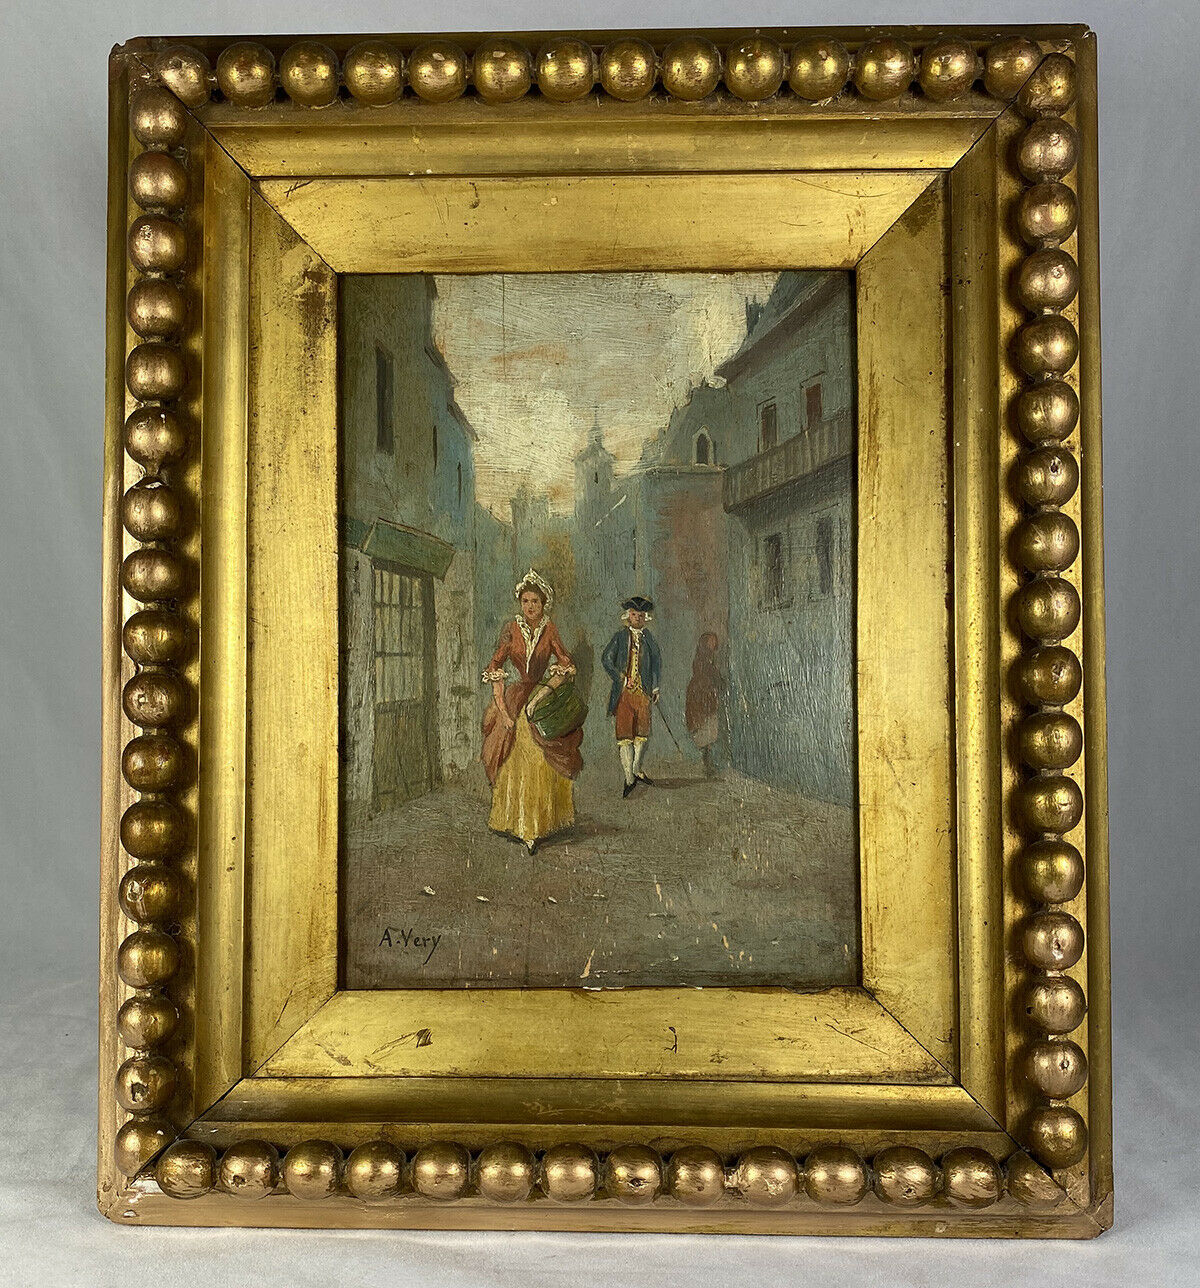 PAIR: Antique Oil Painting on Board, Original c.1870s Wood Frame, Gilt & Gadroon